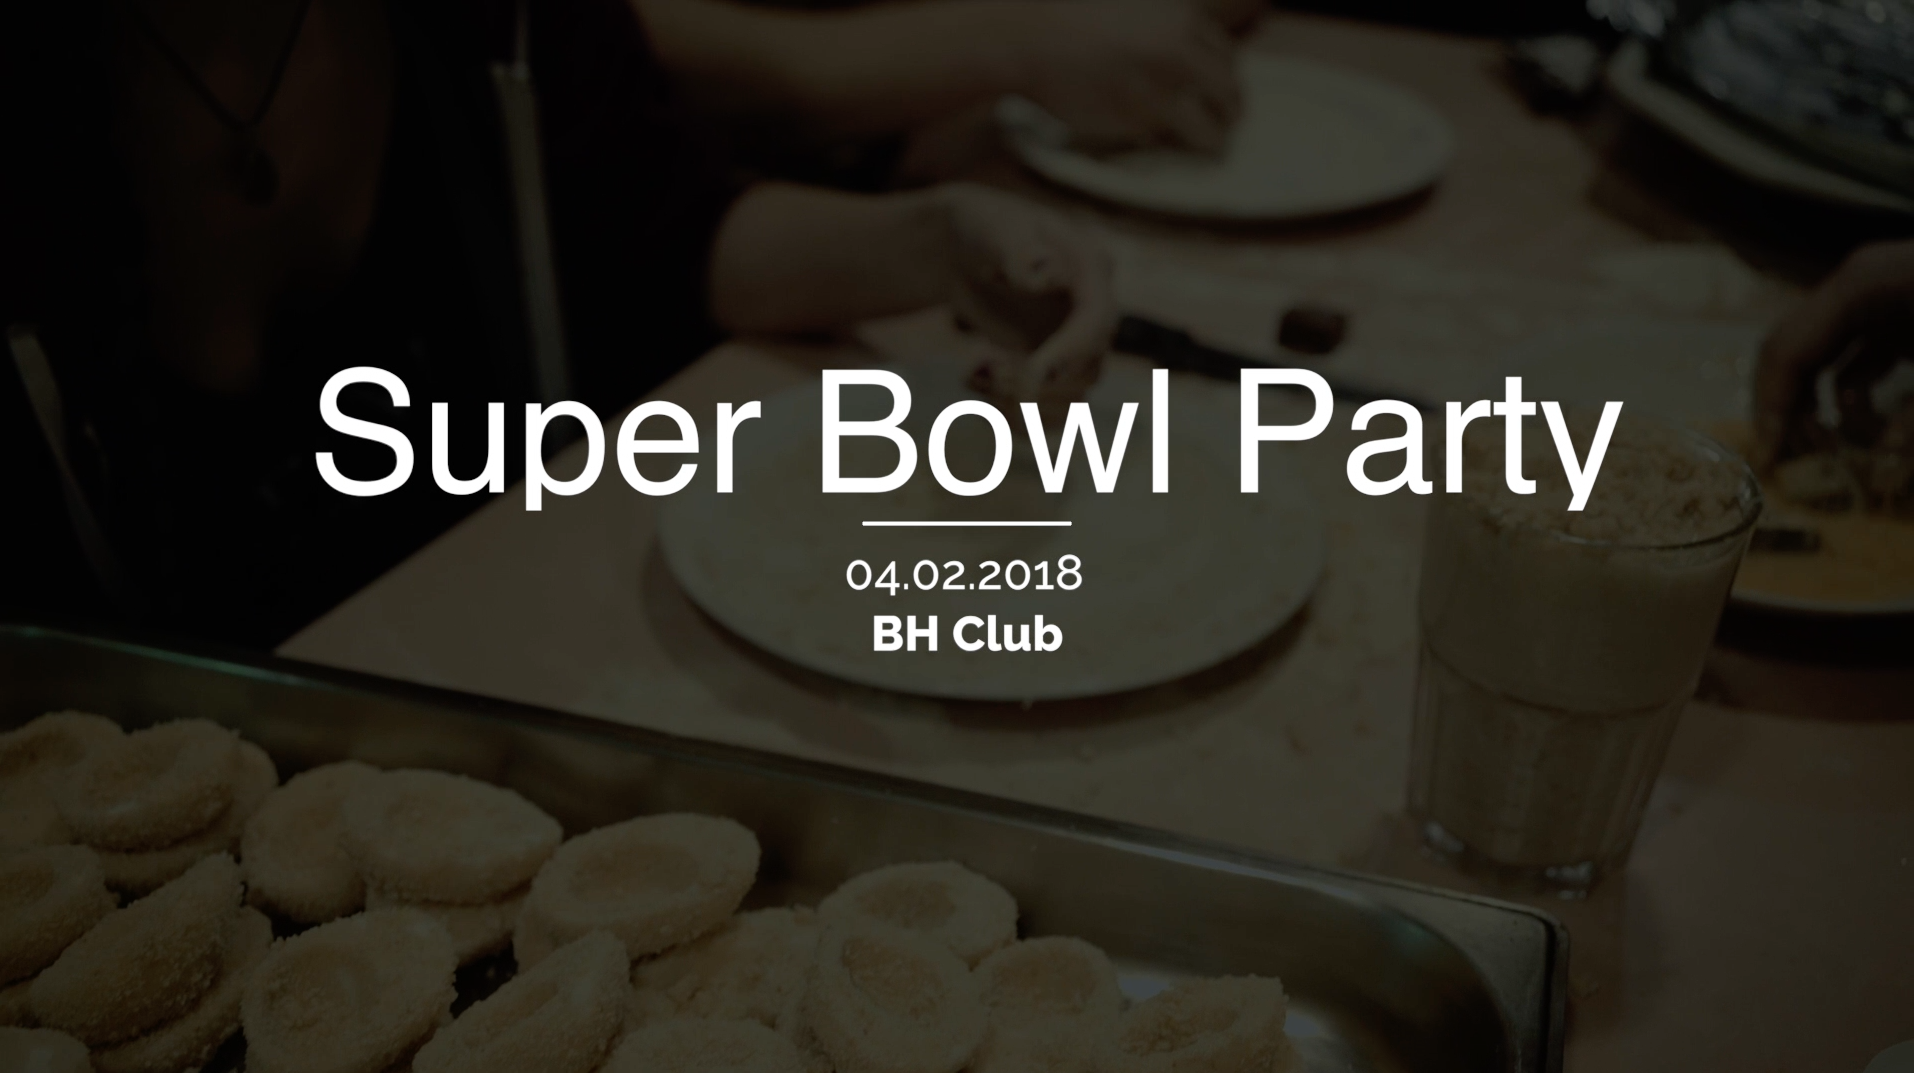 Super Bowl Party 2018 BH Club Ilmenau